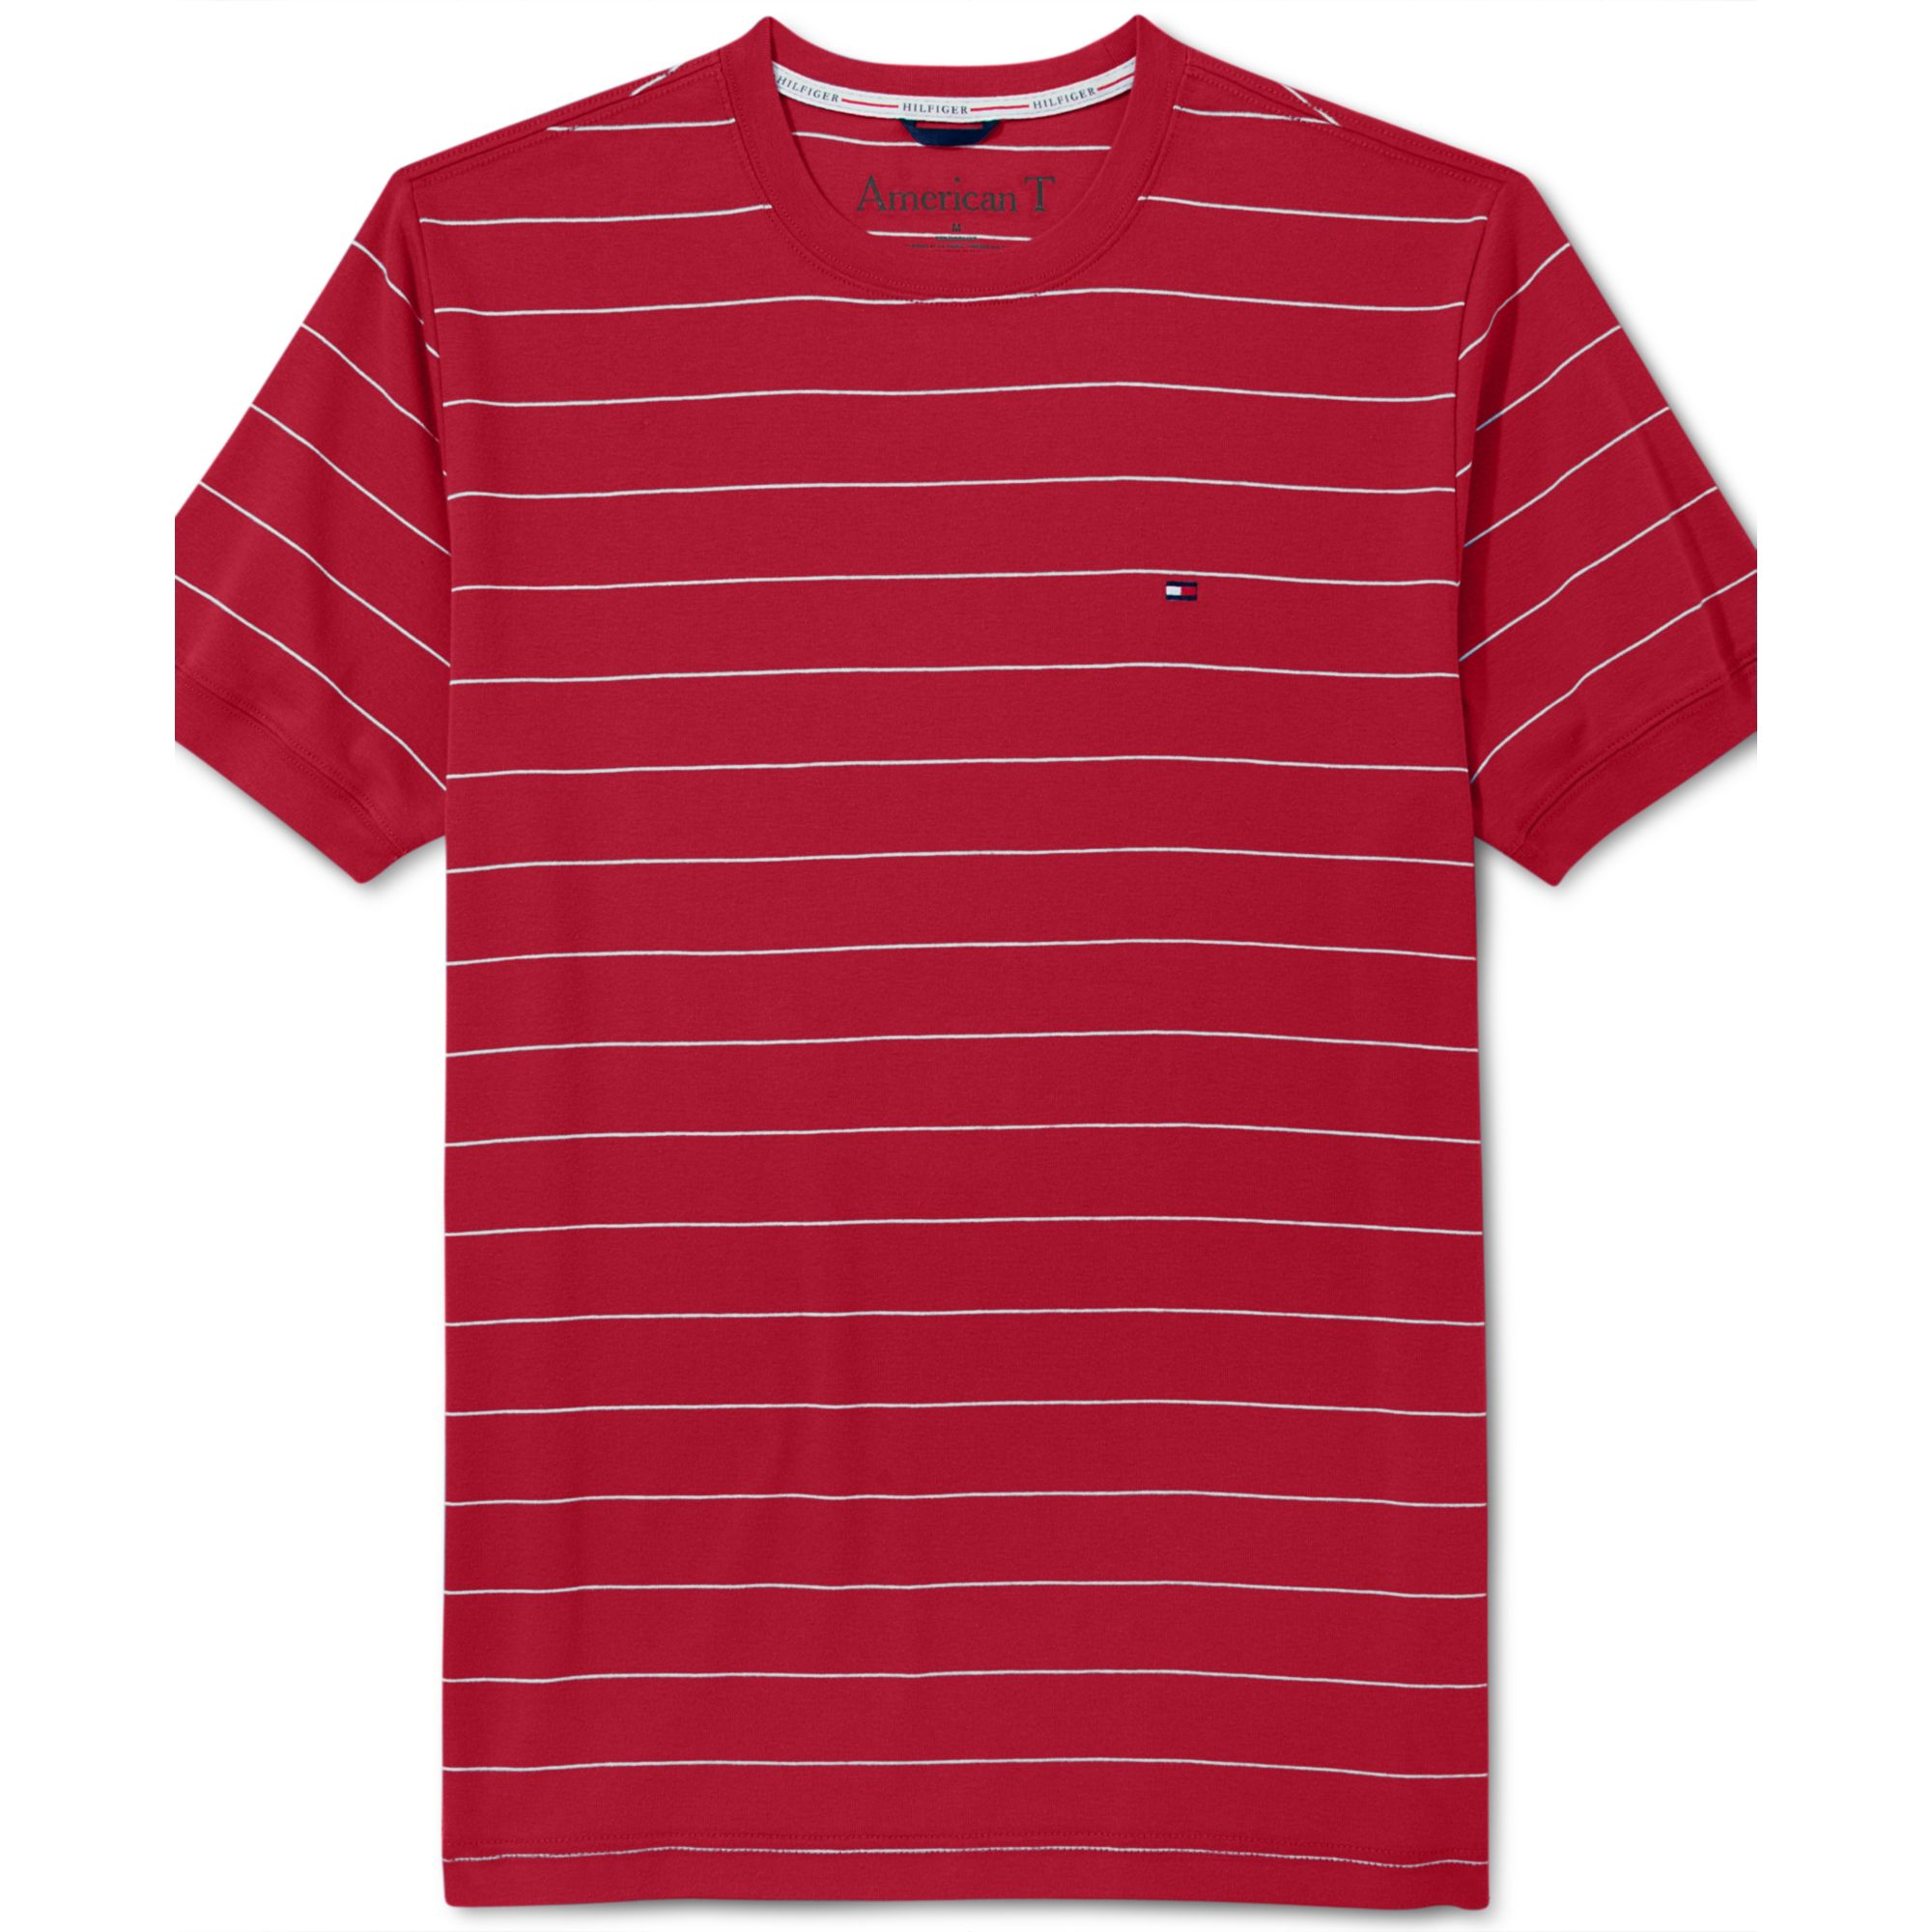 55366abb18d1 Tommy Hilfiger American Striped T-shirt in Red for Men - Lyst